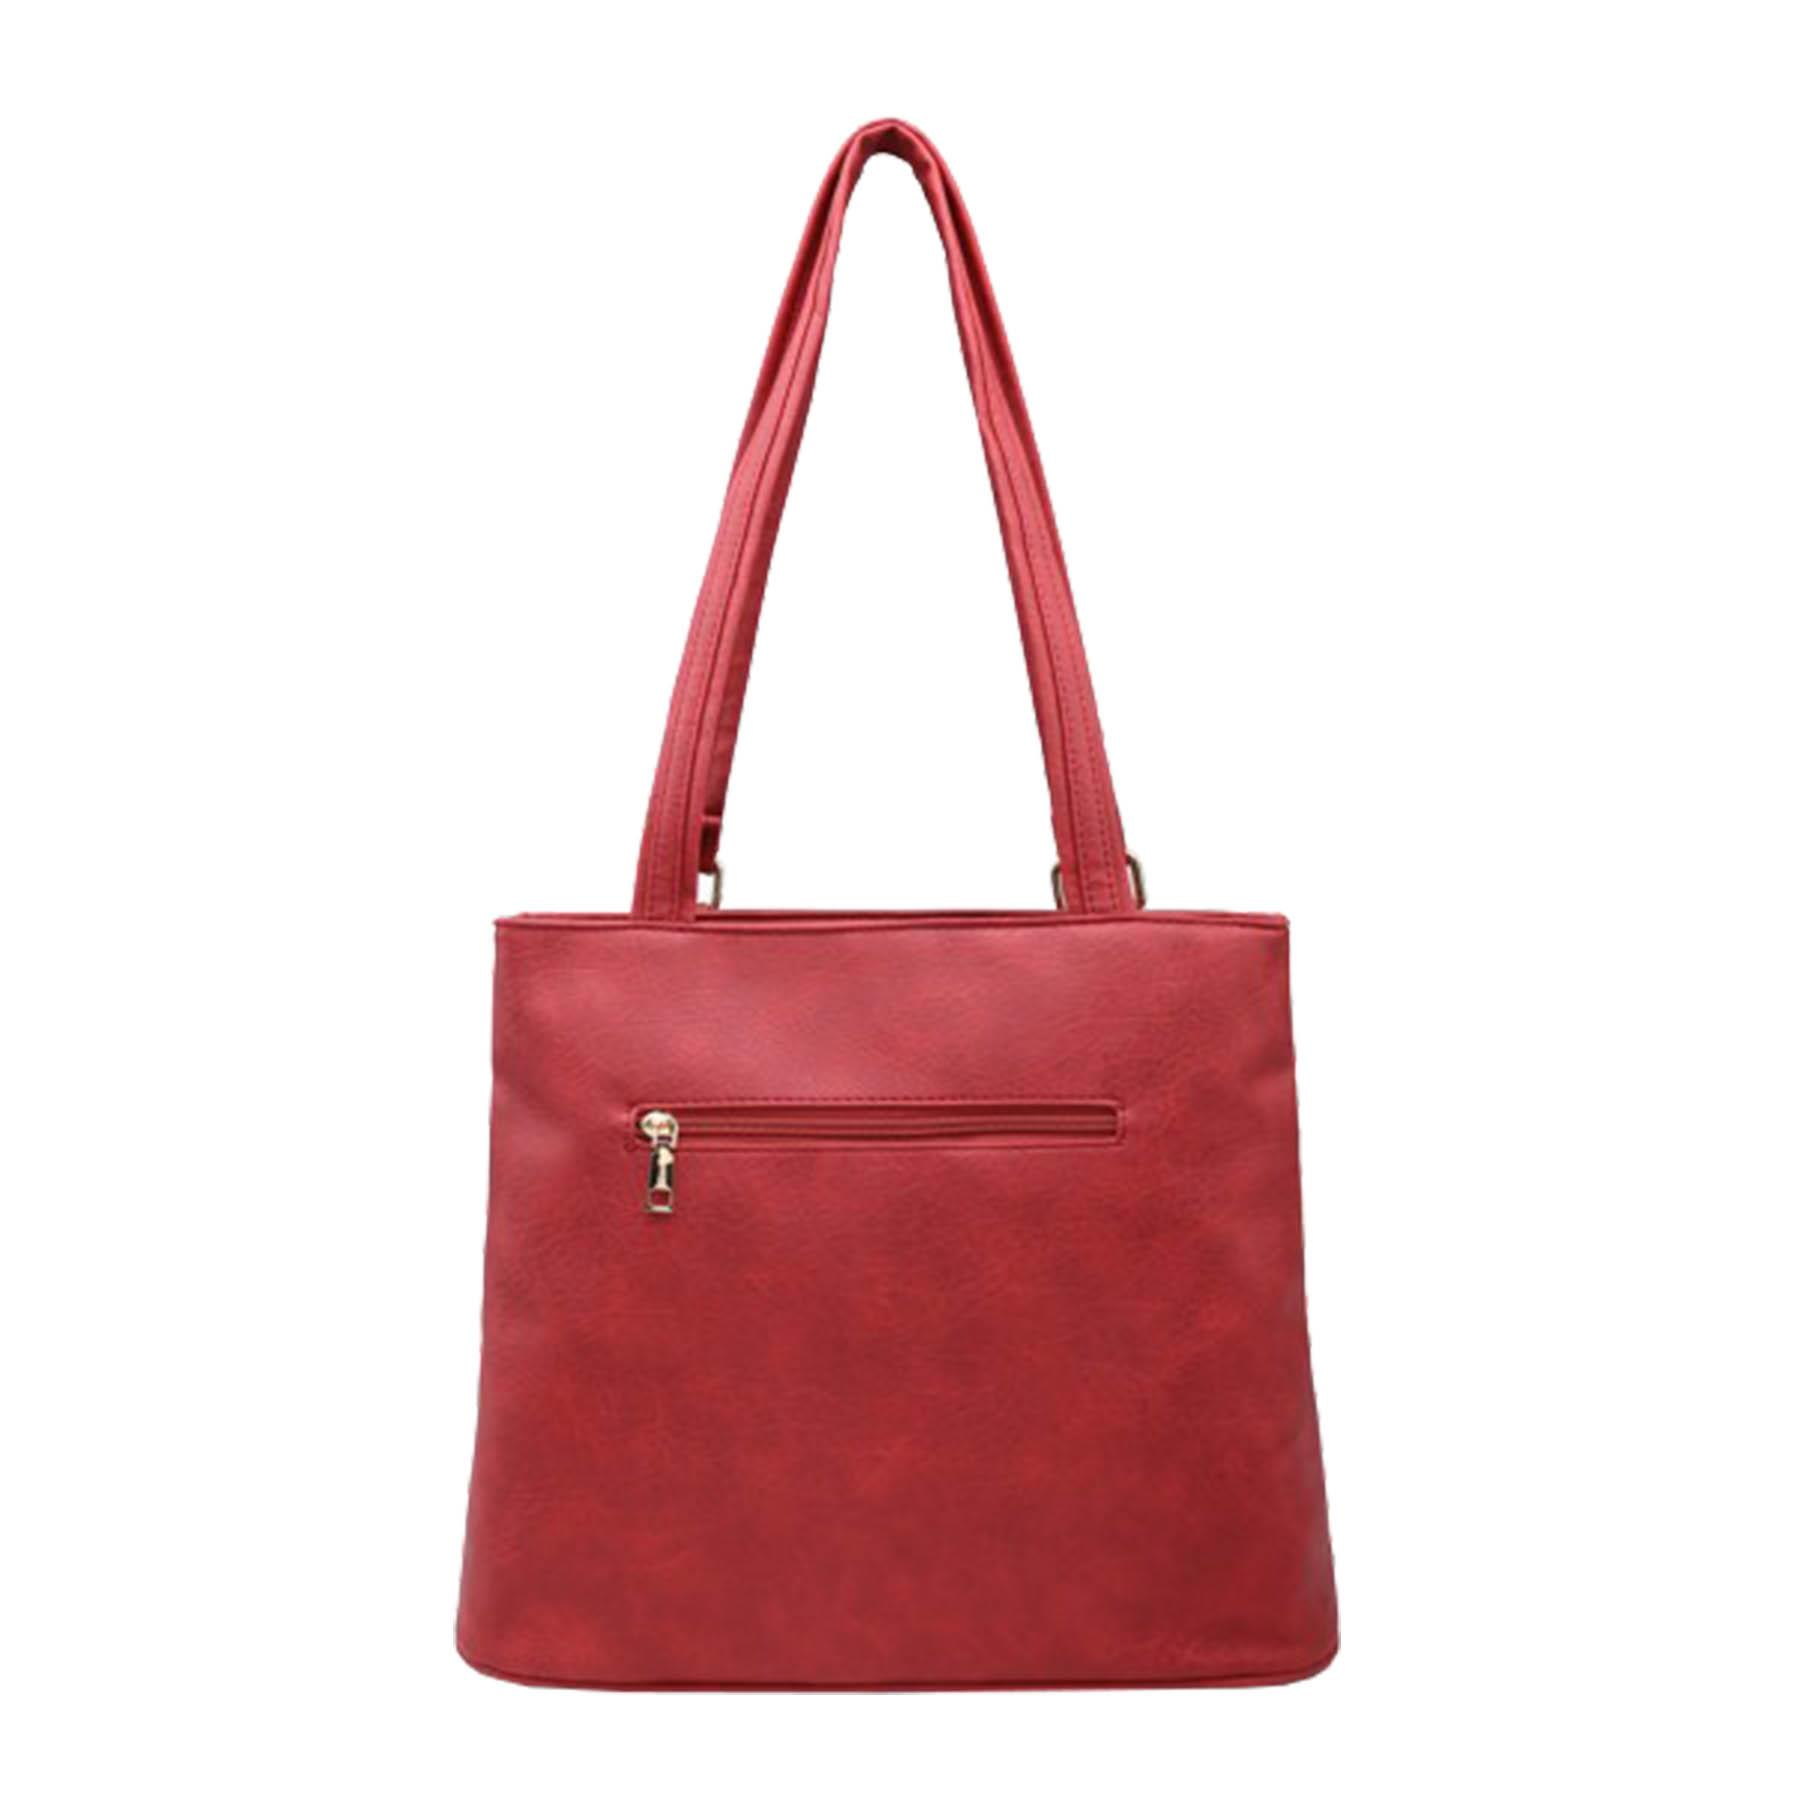 New-Panel-Design-Synthetic-Leather-Simple-Shoulder-Shopper-Tote-Bag thumbnail 11